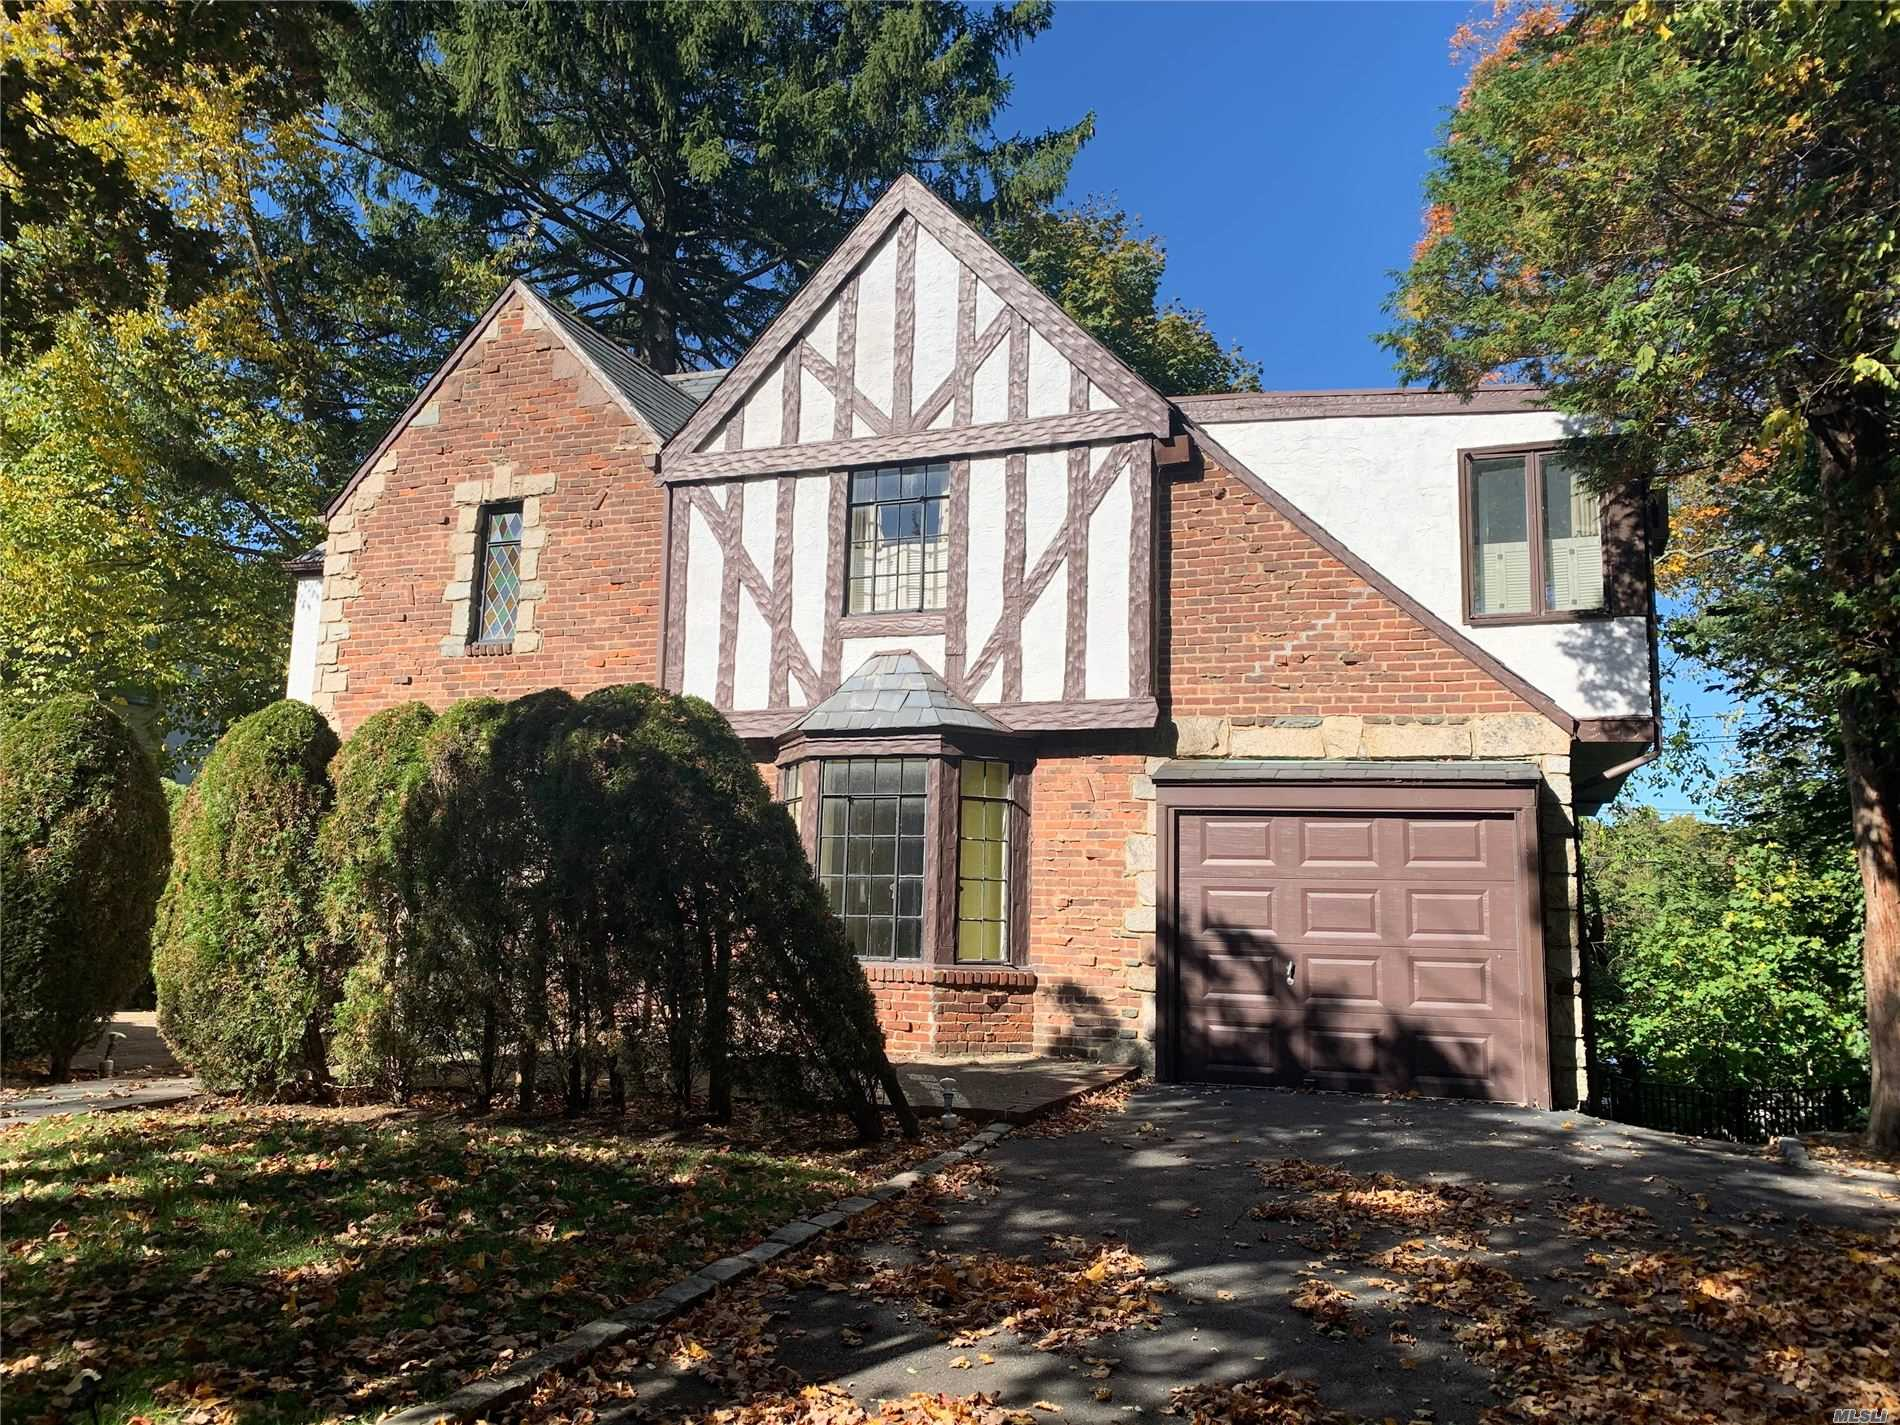 Classic South Strathmore Tudor.Oversized Bedrooms and Ground level Basement.Low Taxes.Award winning Manhasset Schools.